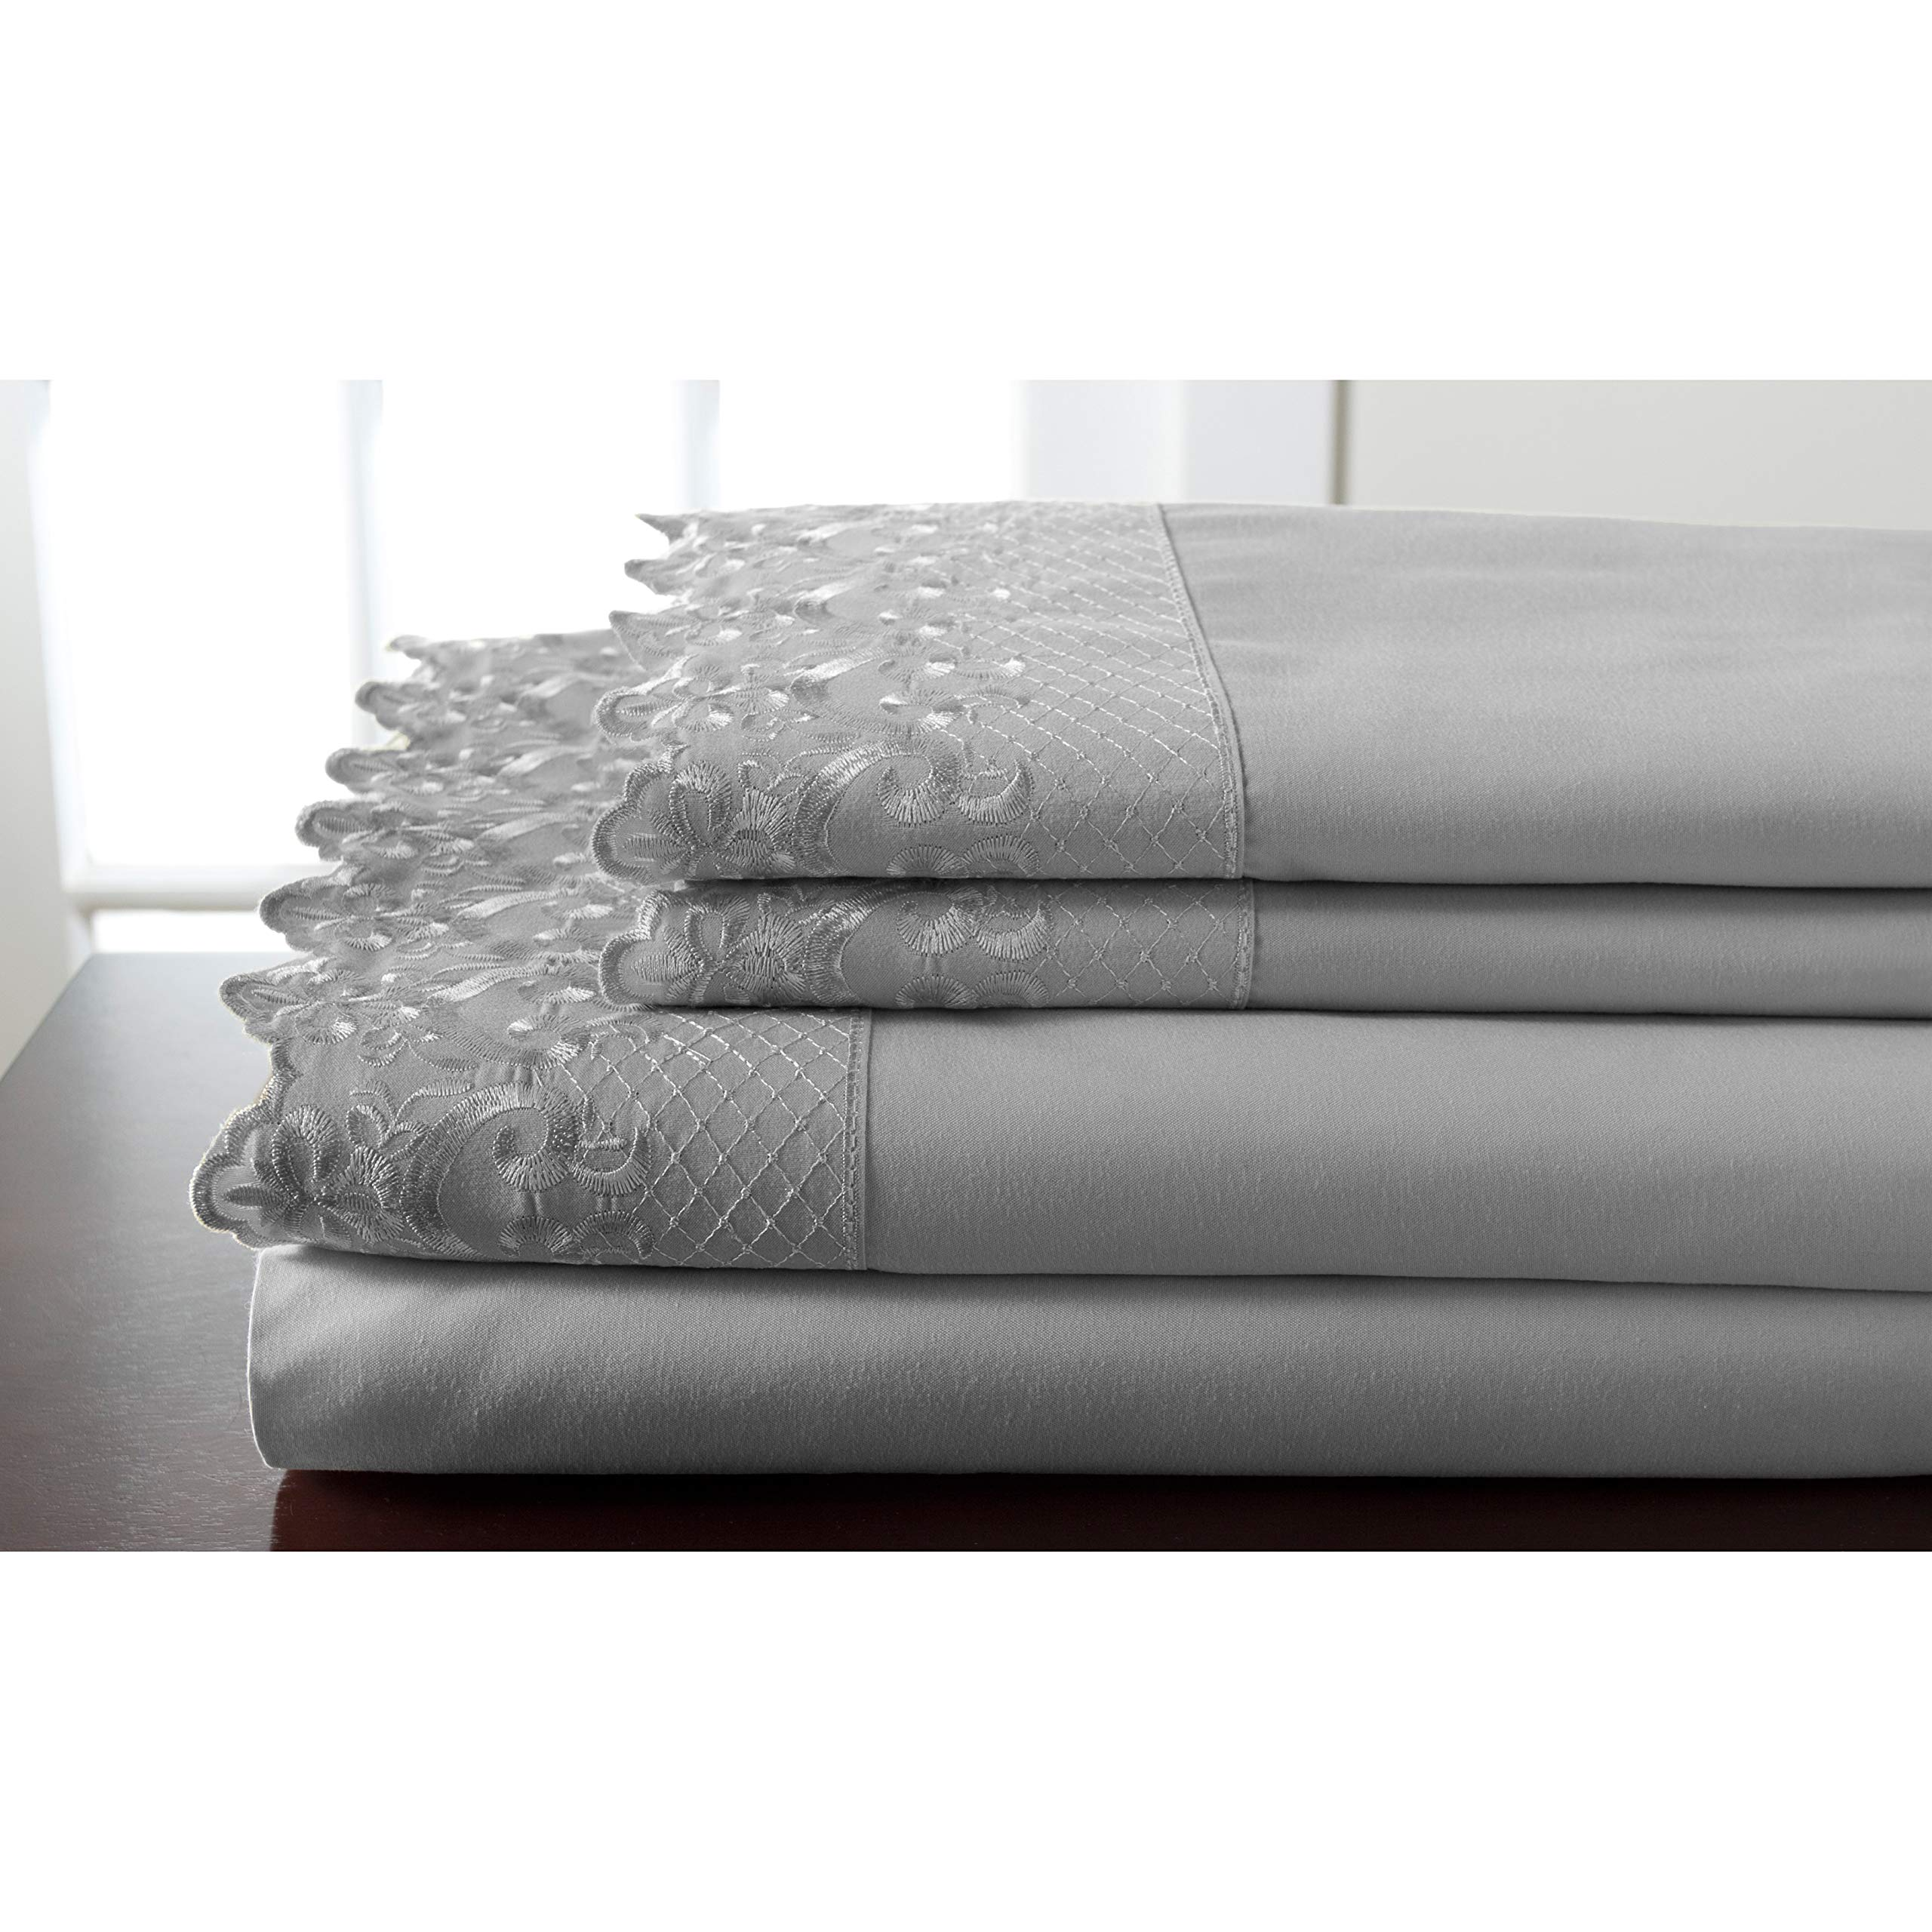 Elite Home Products, Inc. Hotel Lace Microfiber Sheet Set White 4 Piece King